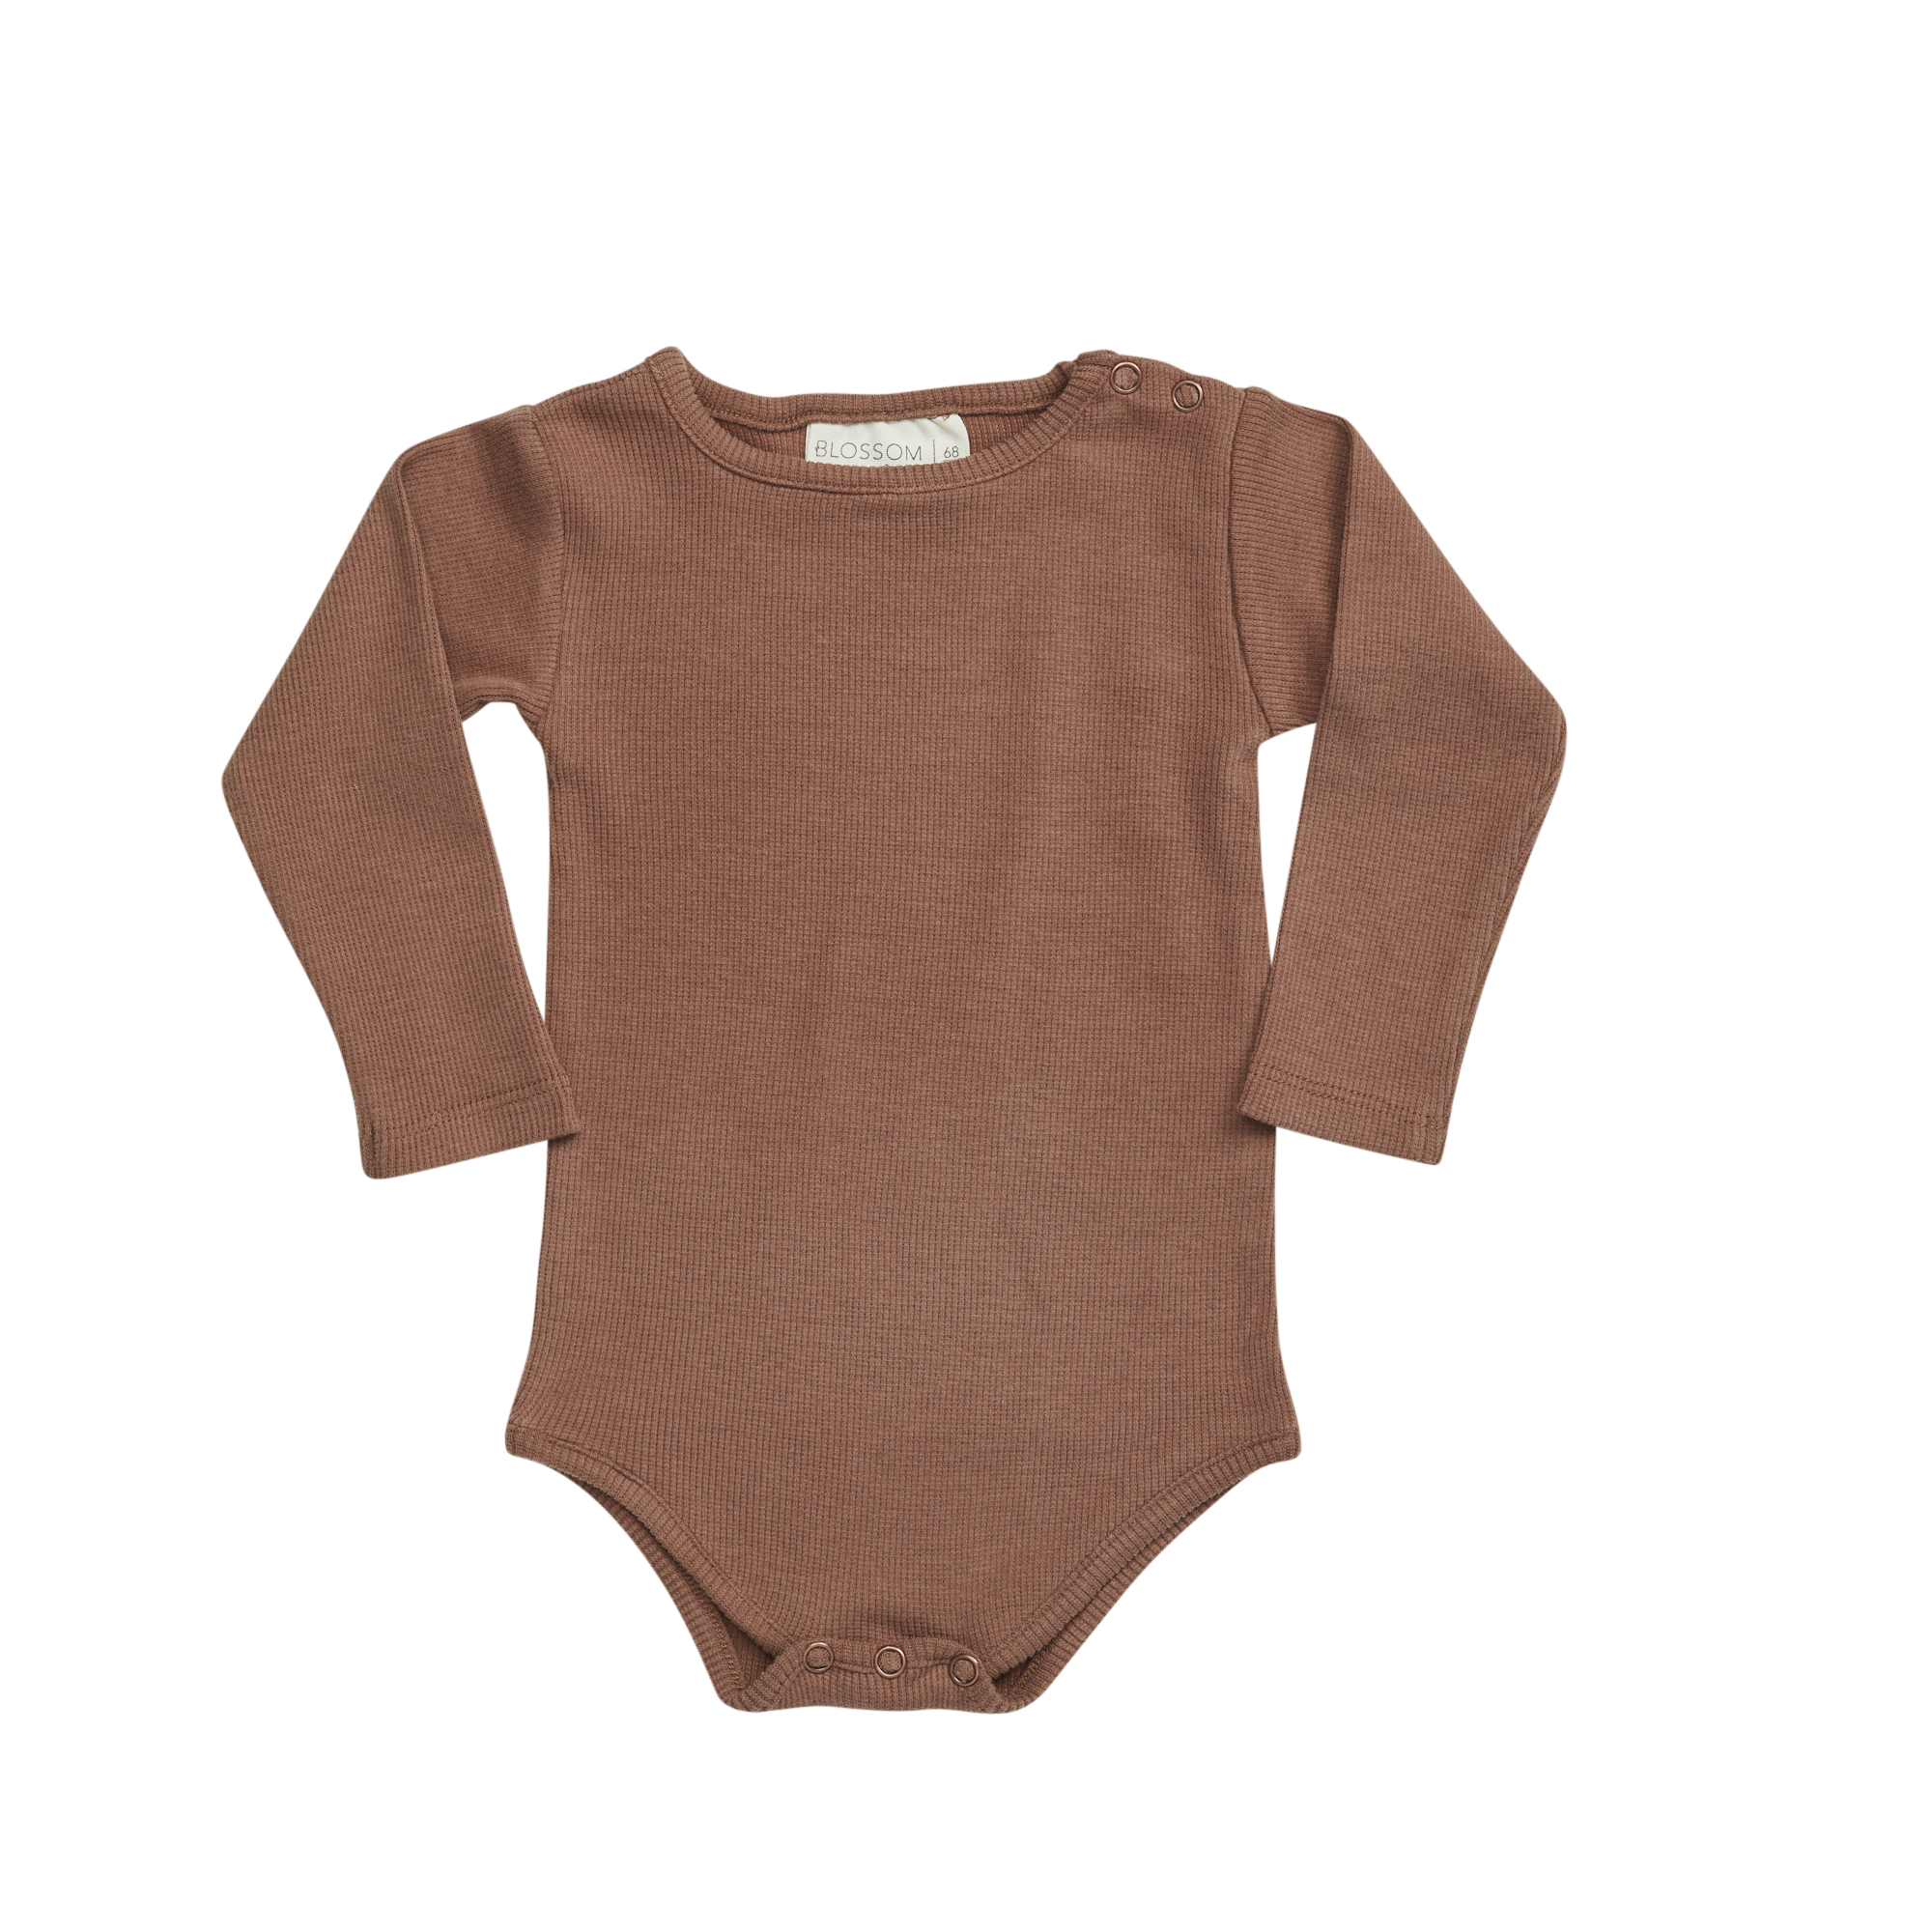 Blossom kids Blossom kids - Body long sleeve soft rib smoked hazelnut